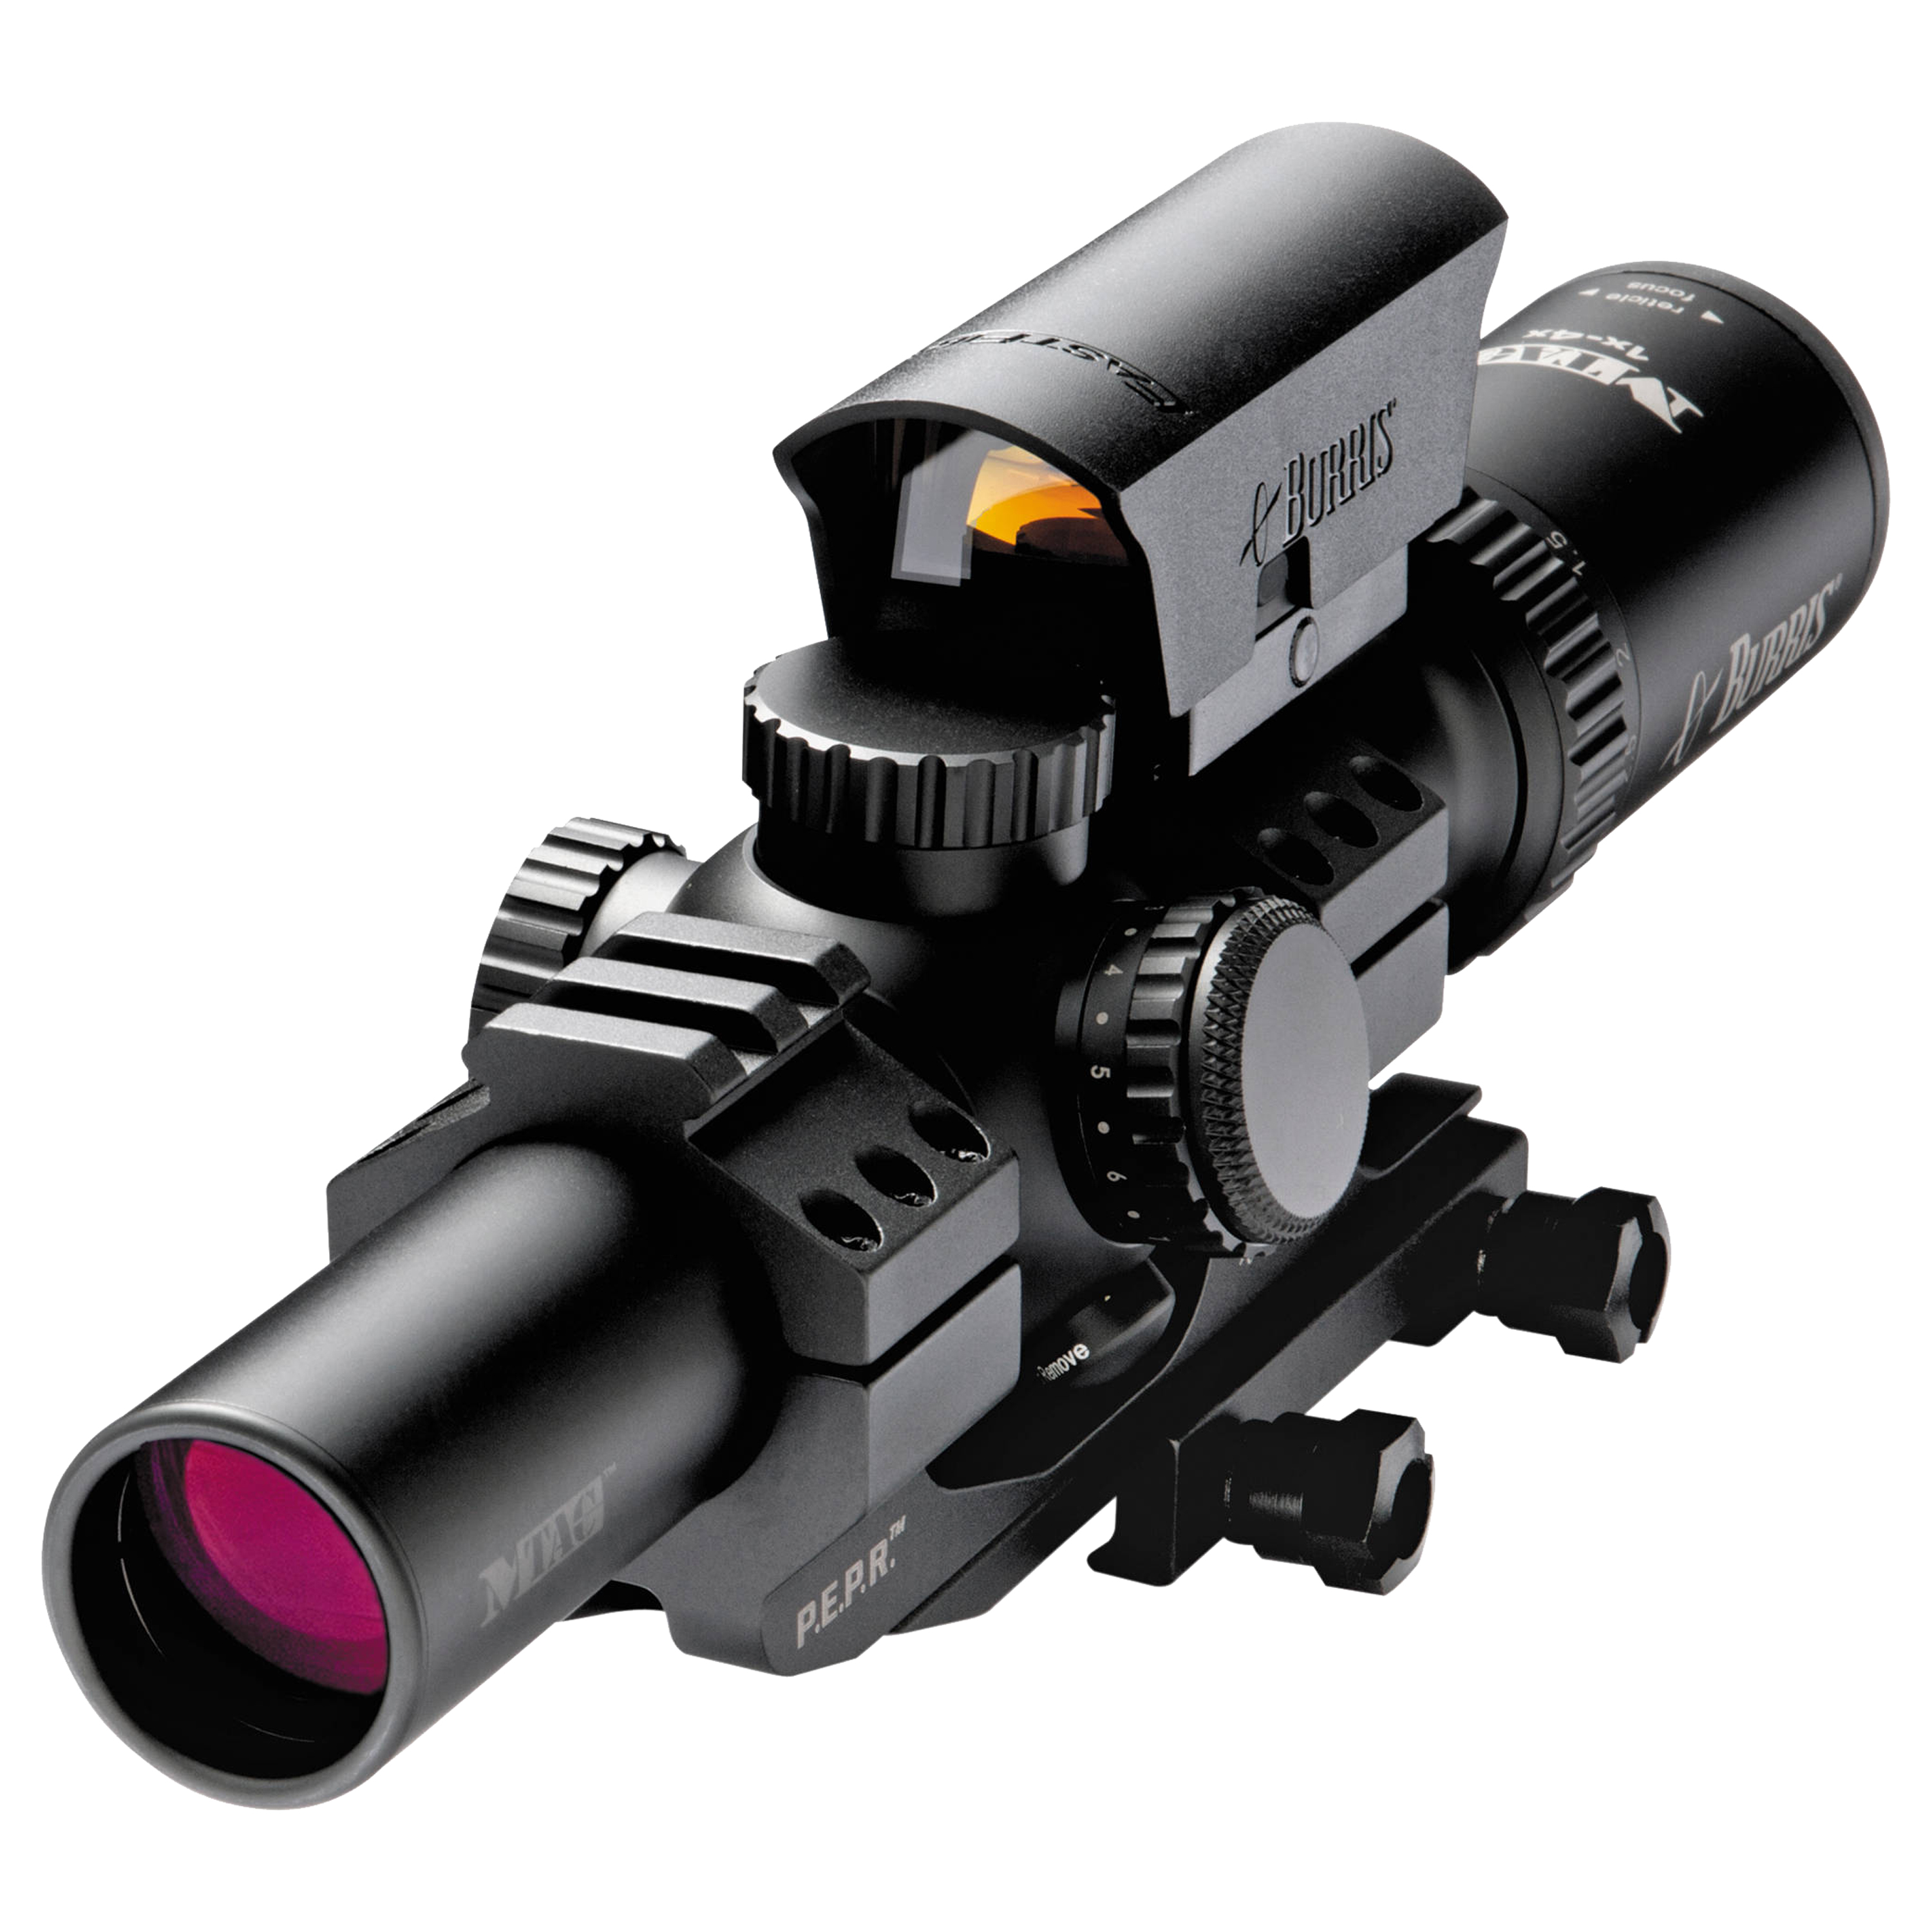 Burris M-Tac Riflescope 1-4x24mm, Illuminated, Fast Fire III,PEPR